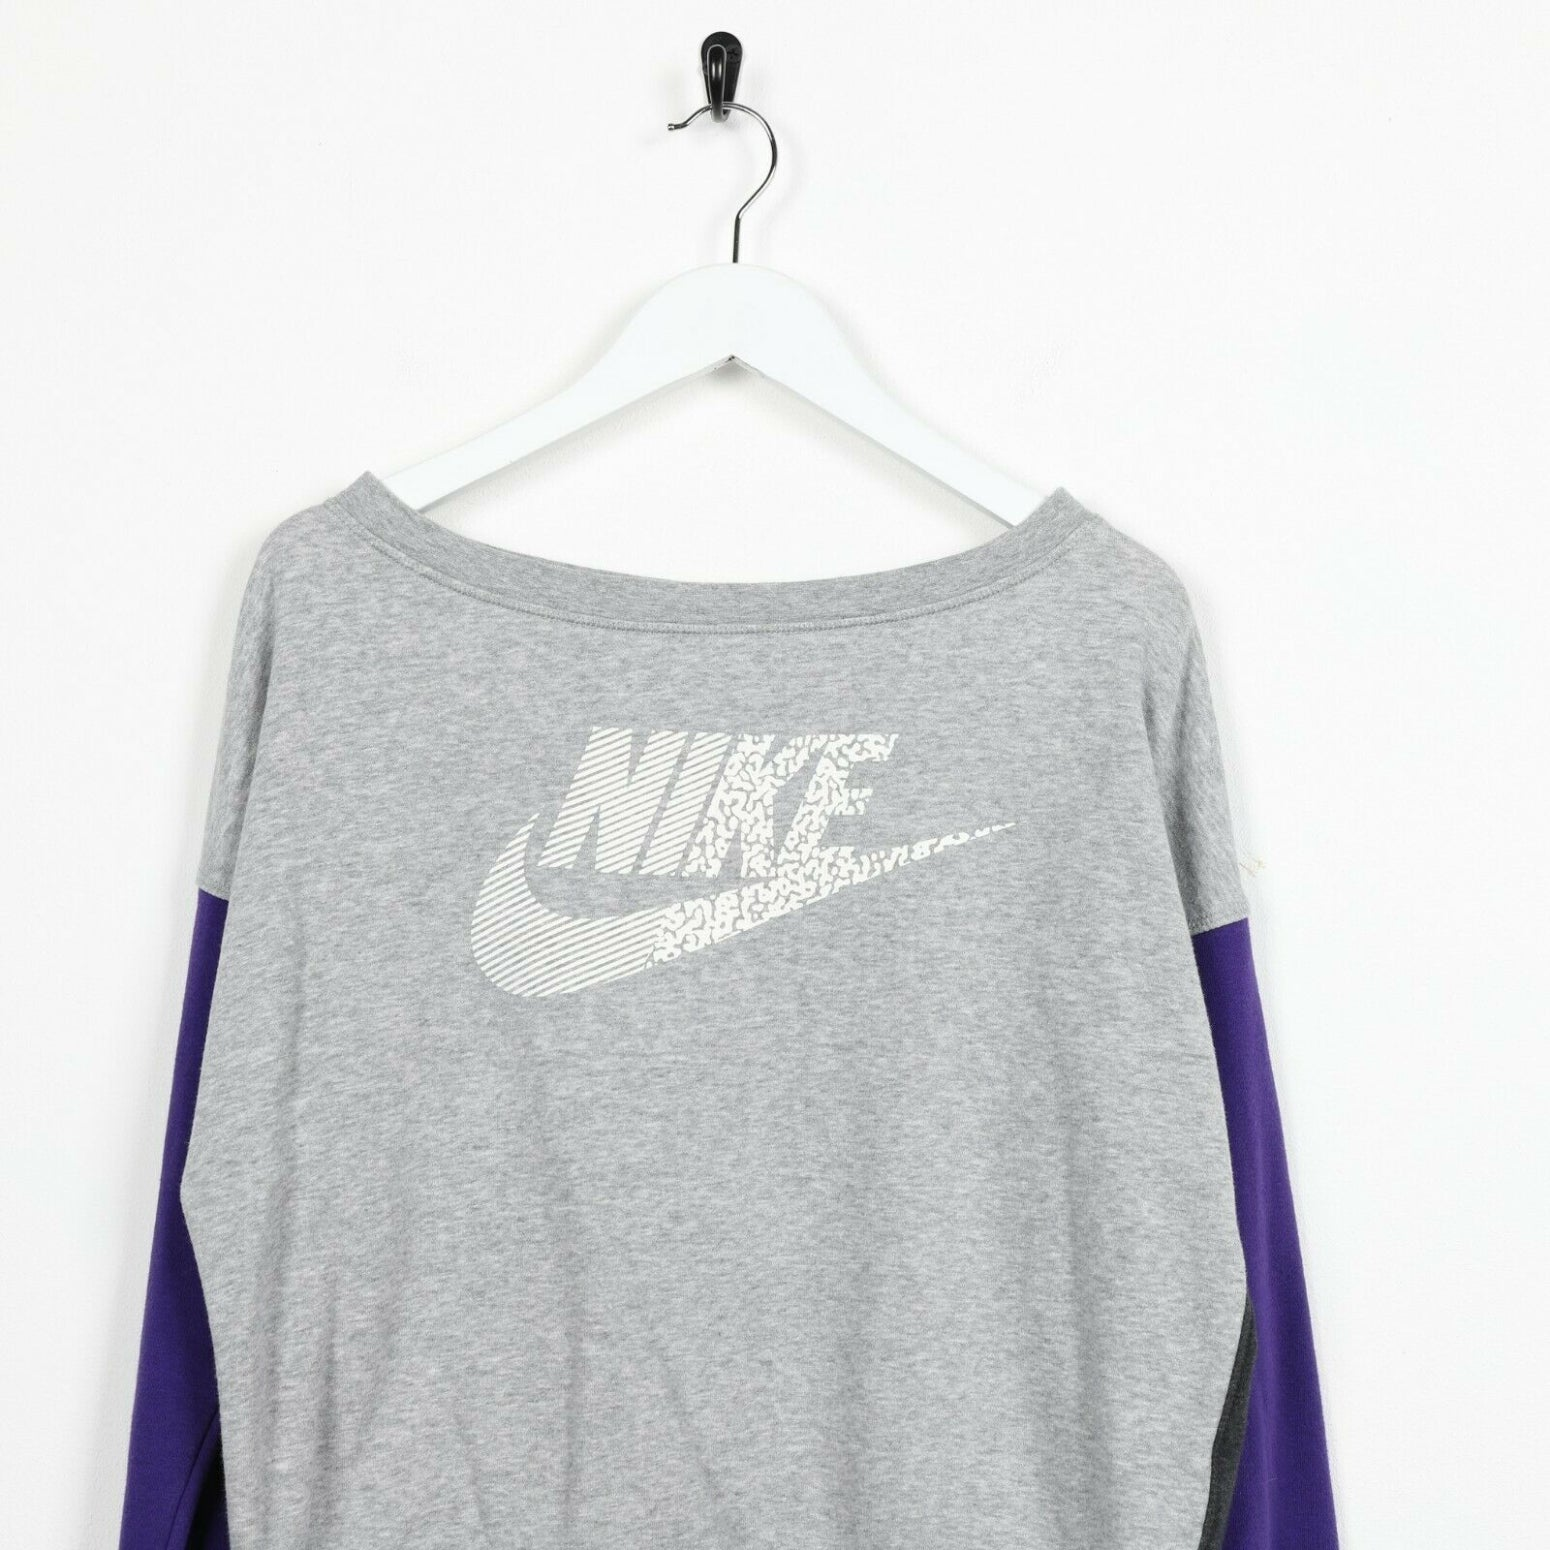 Vintage Women's NIKE Central Spell Out Sweatshirt Jumper Grey Purple | Small S